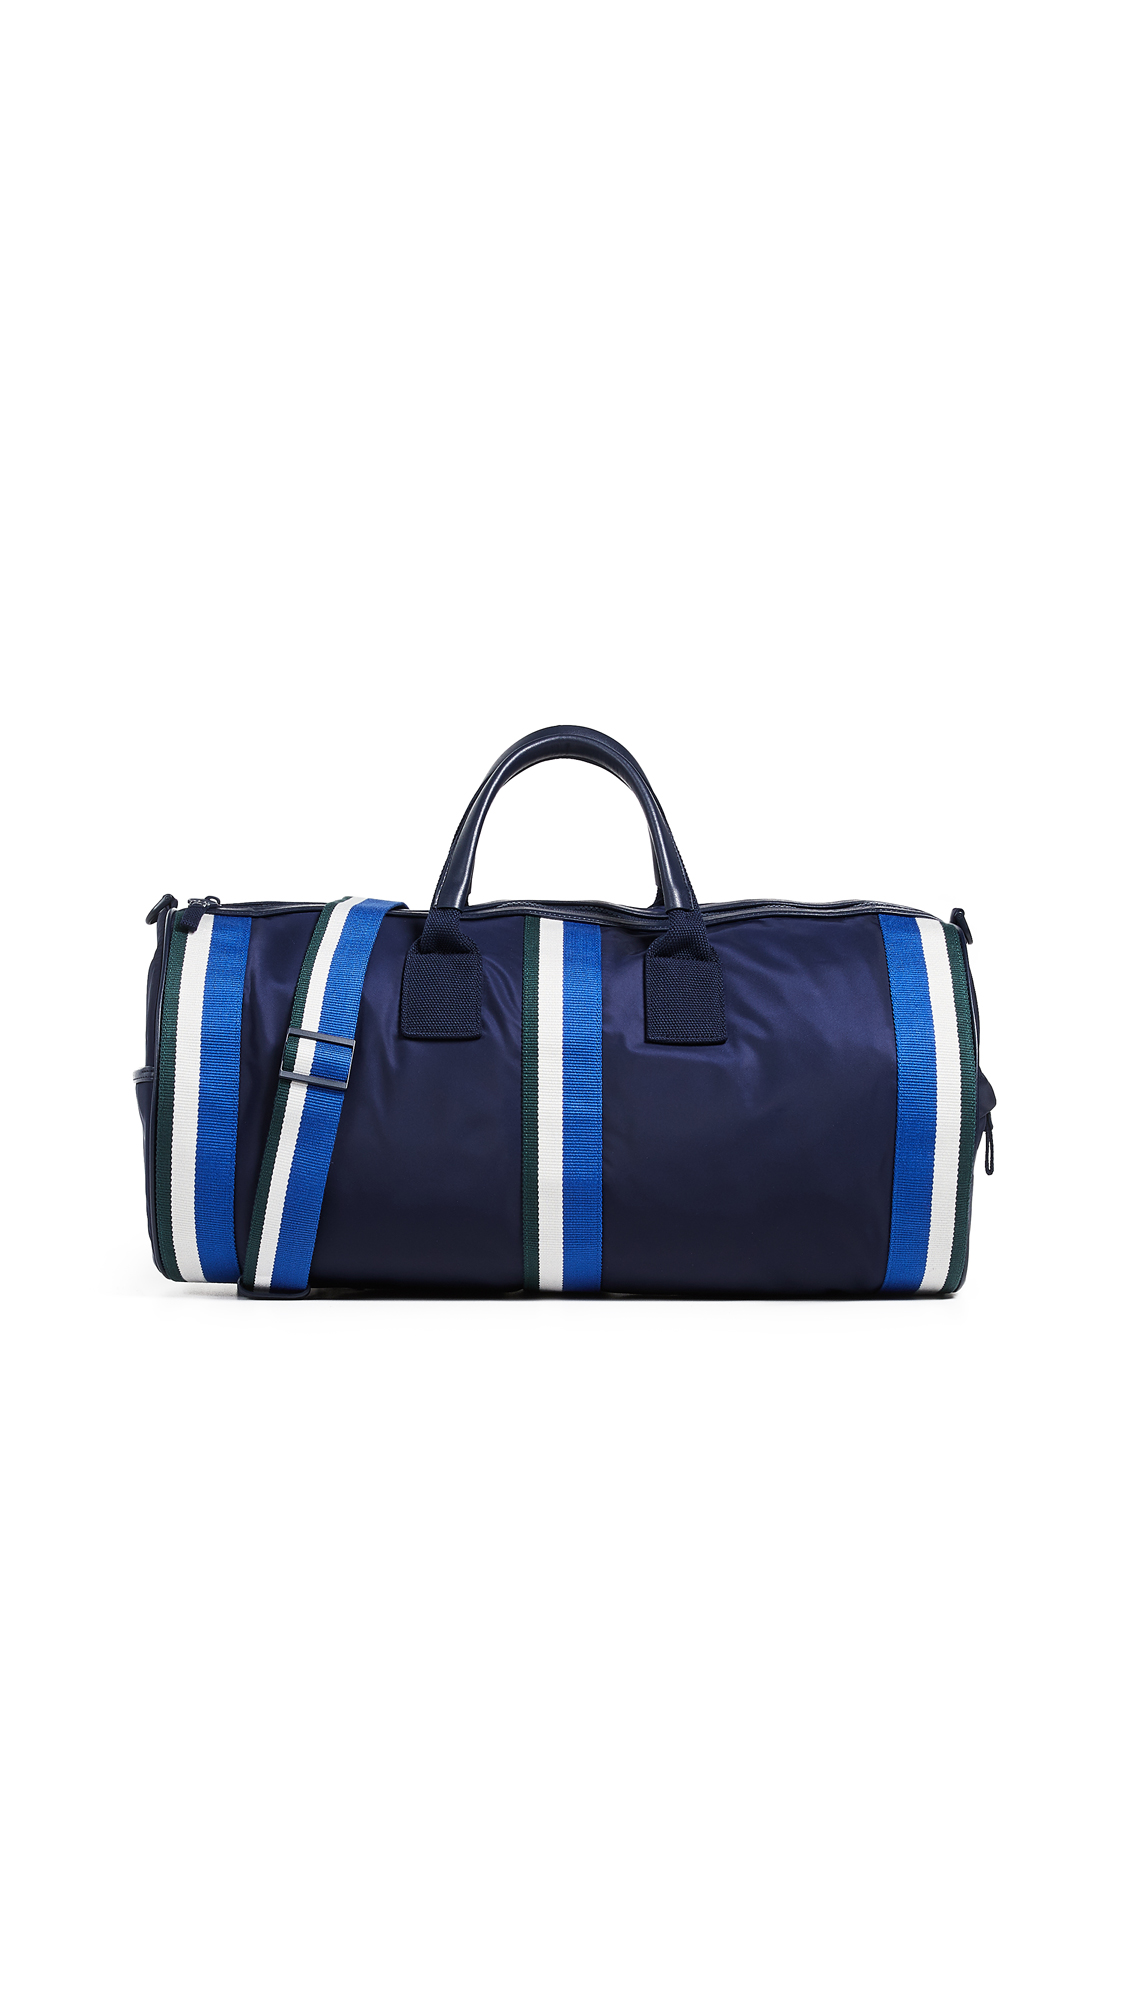 Tory Sport Retro Striped Weekender Duffel Bag - Tory Navy